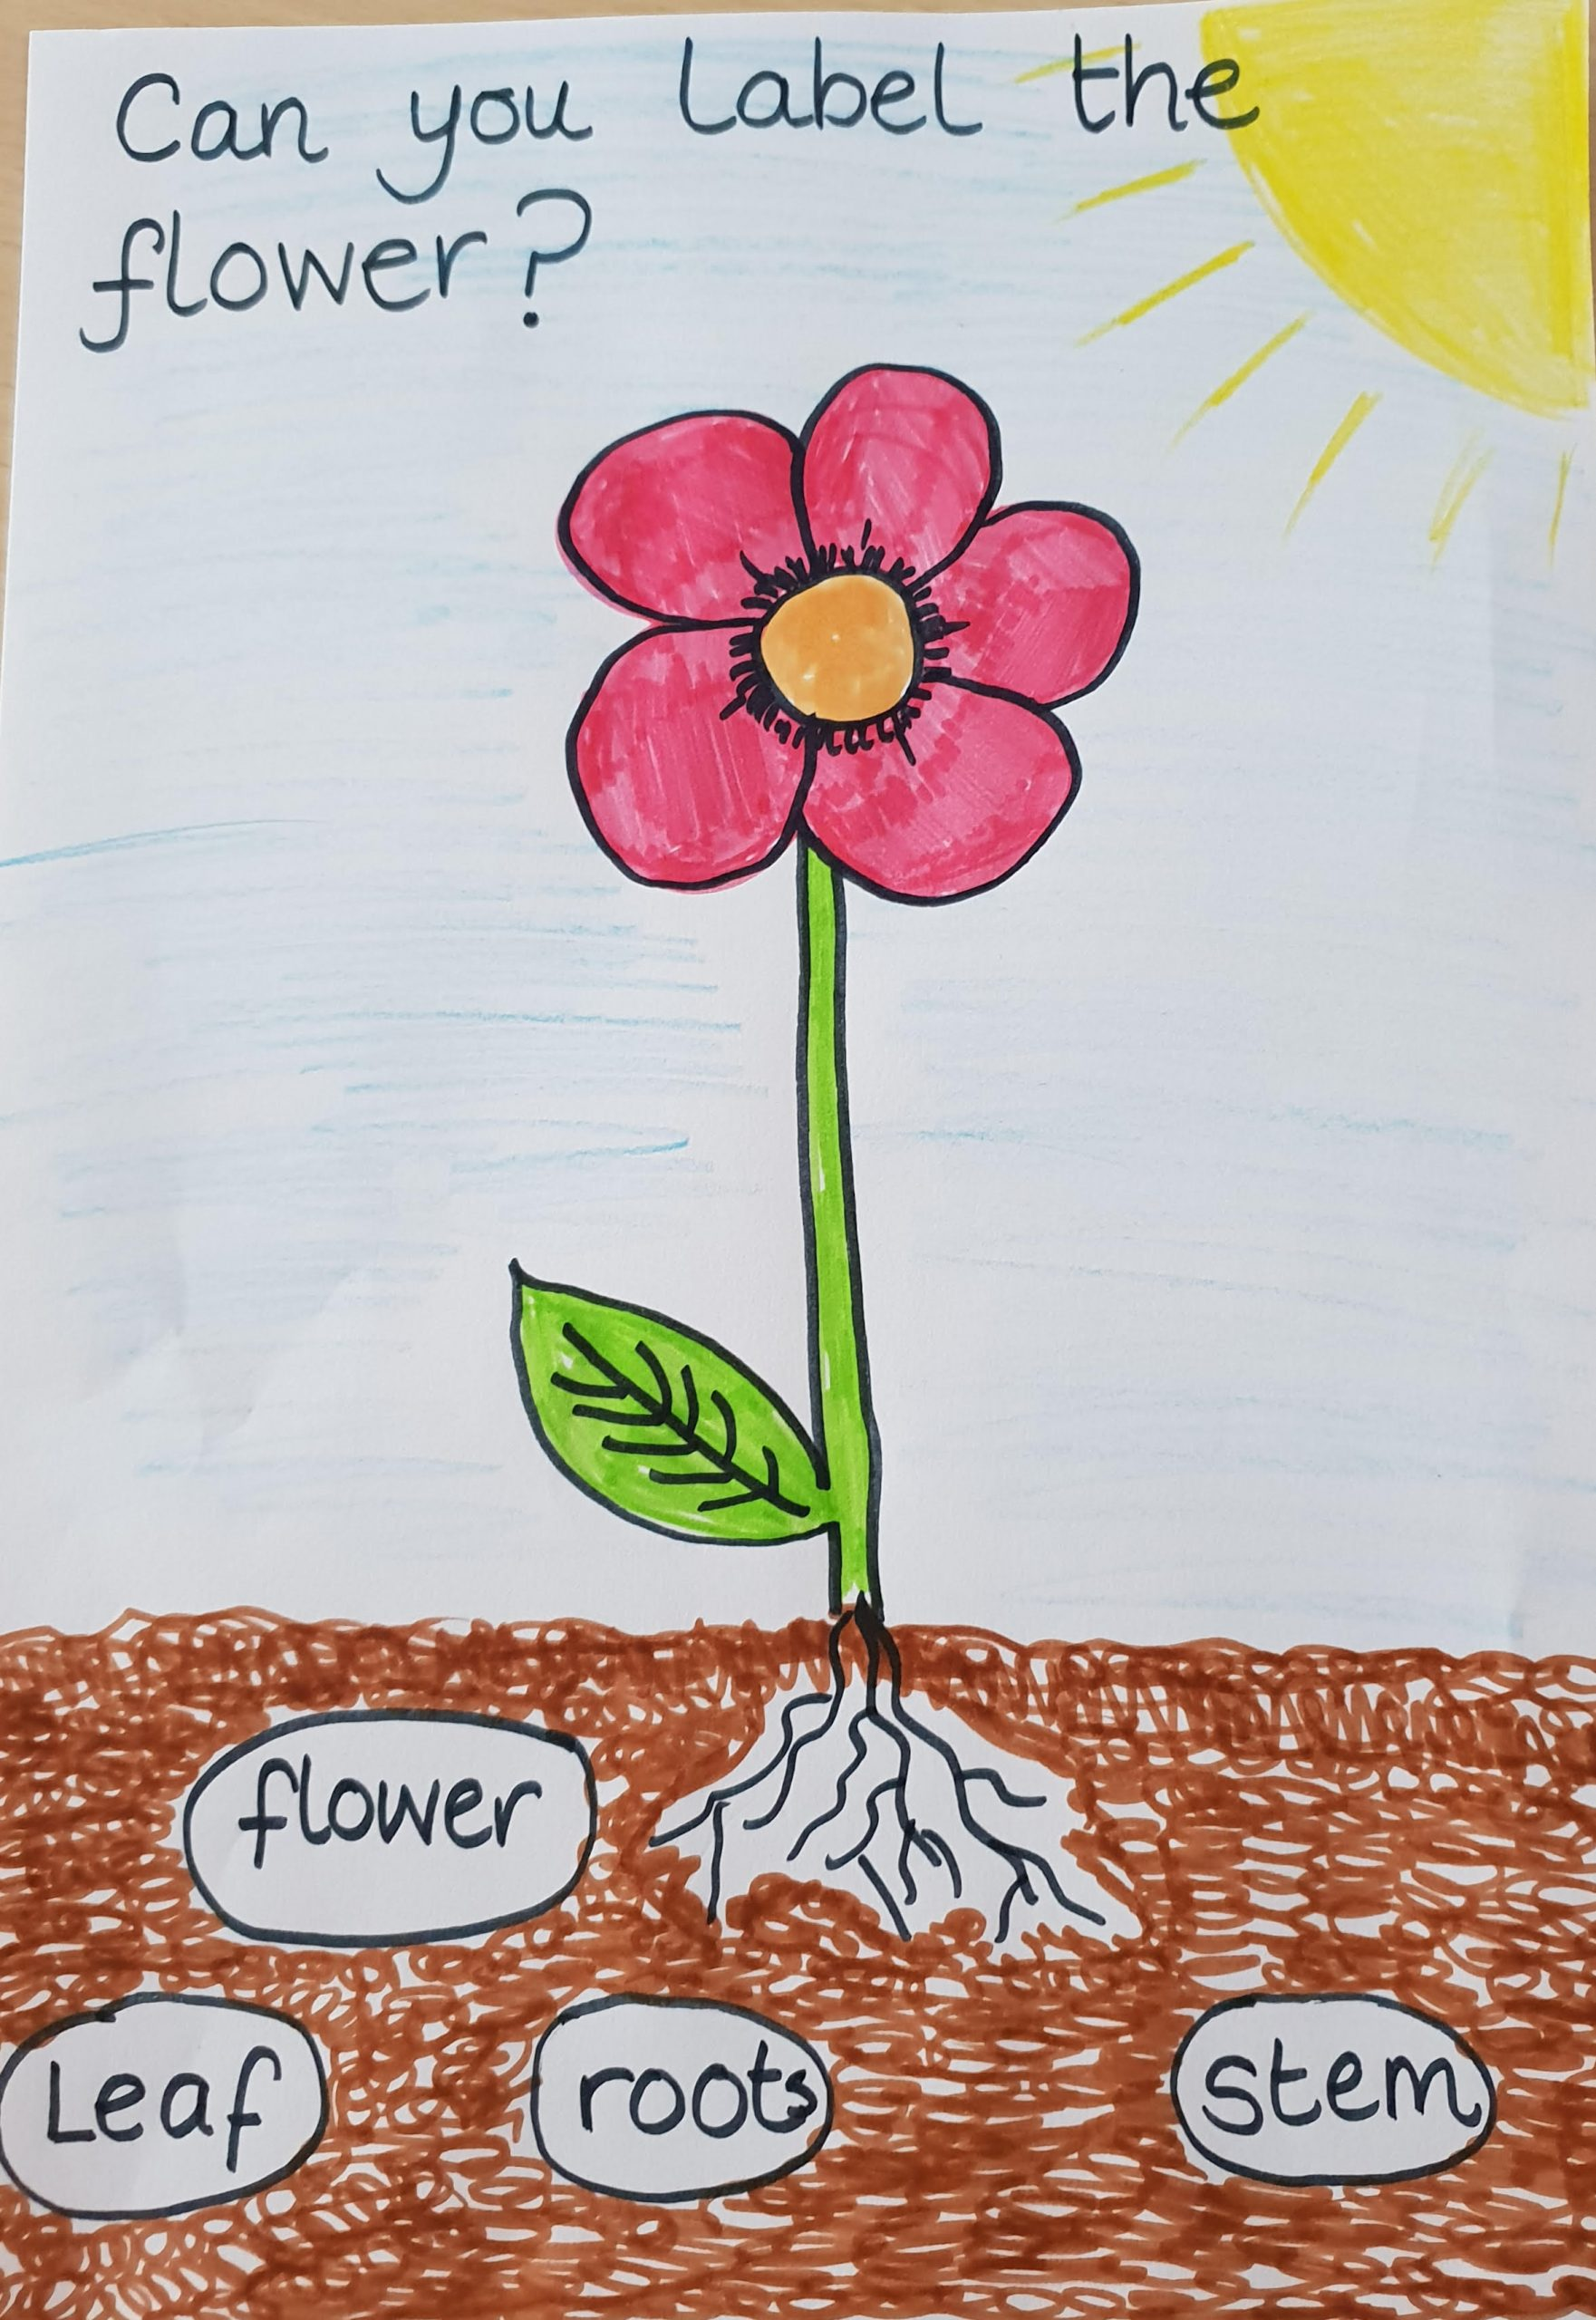 Can you label the flower